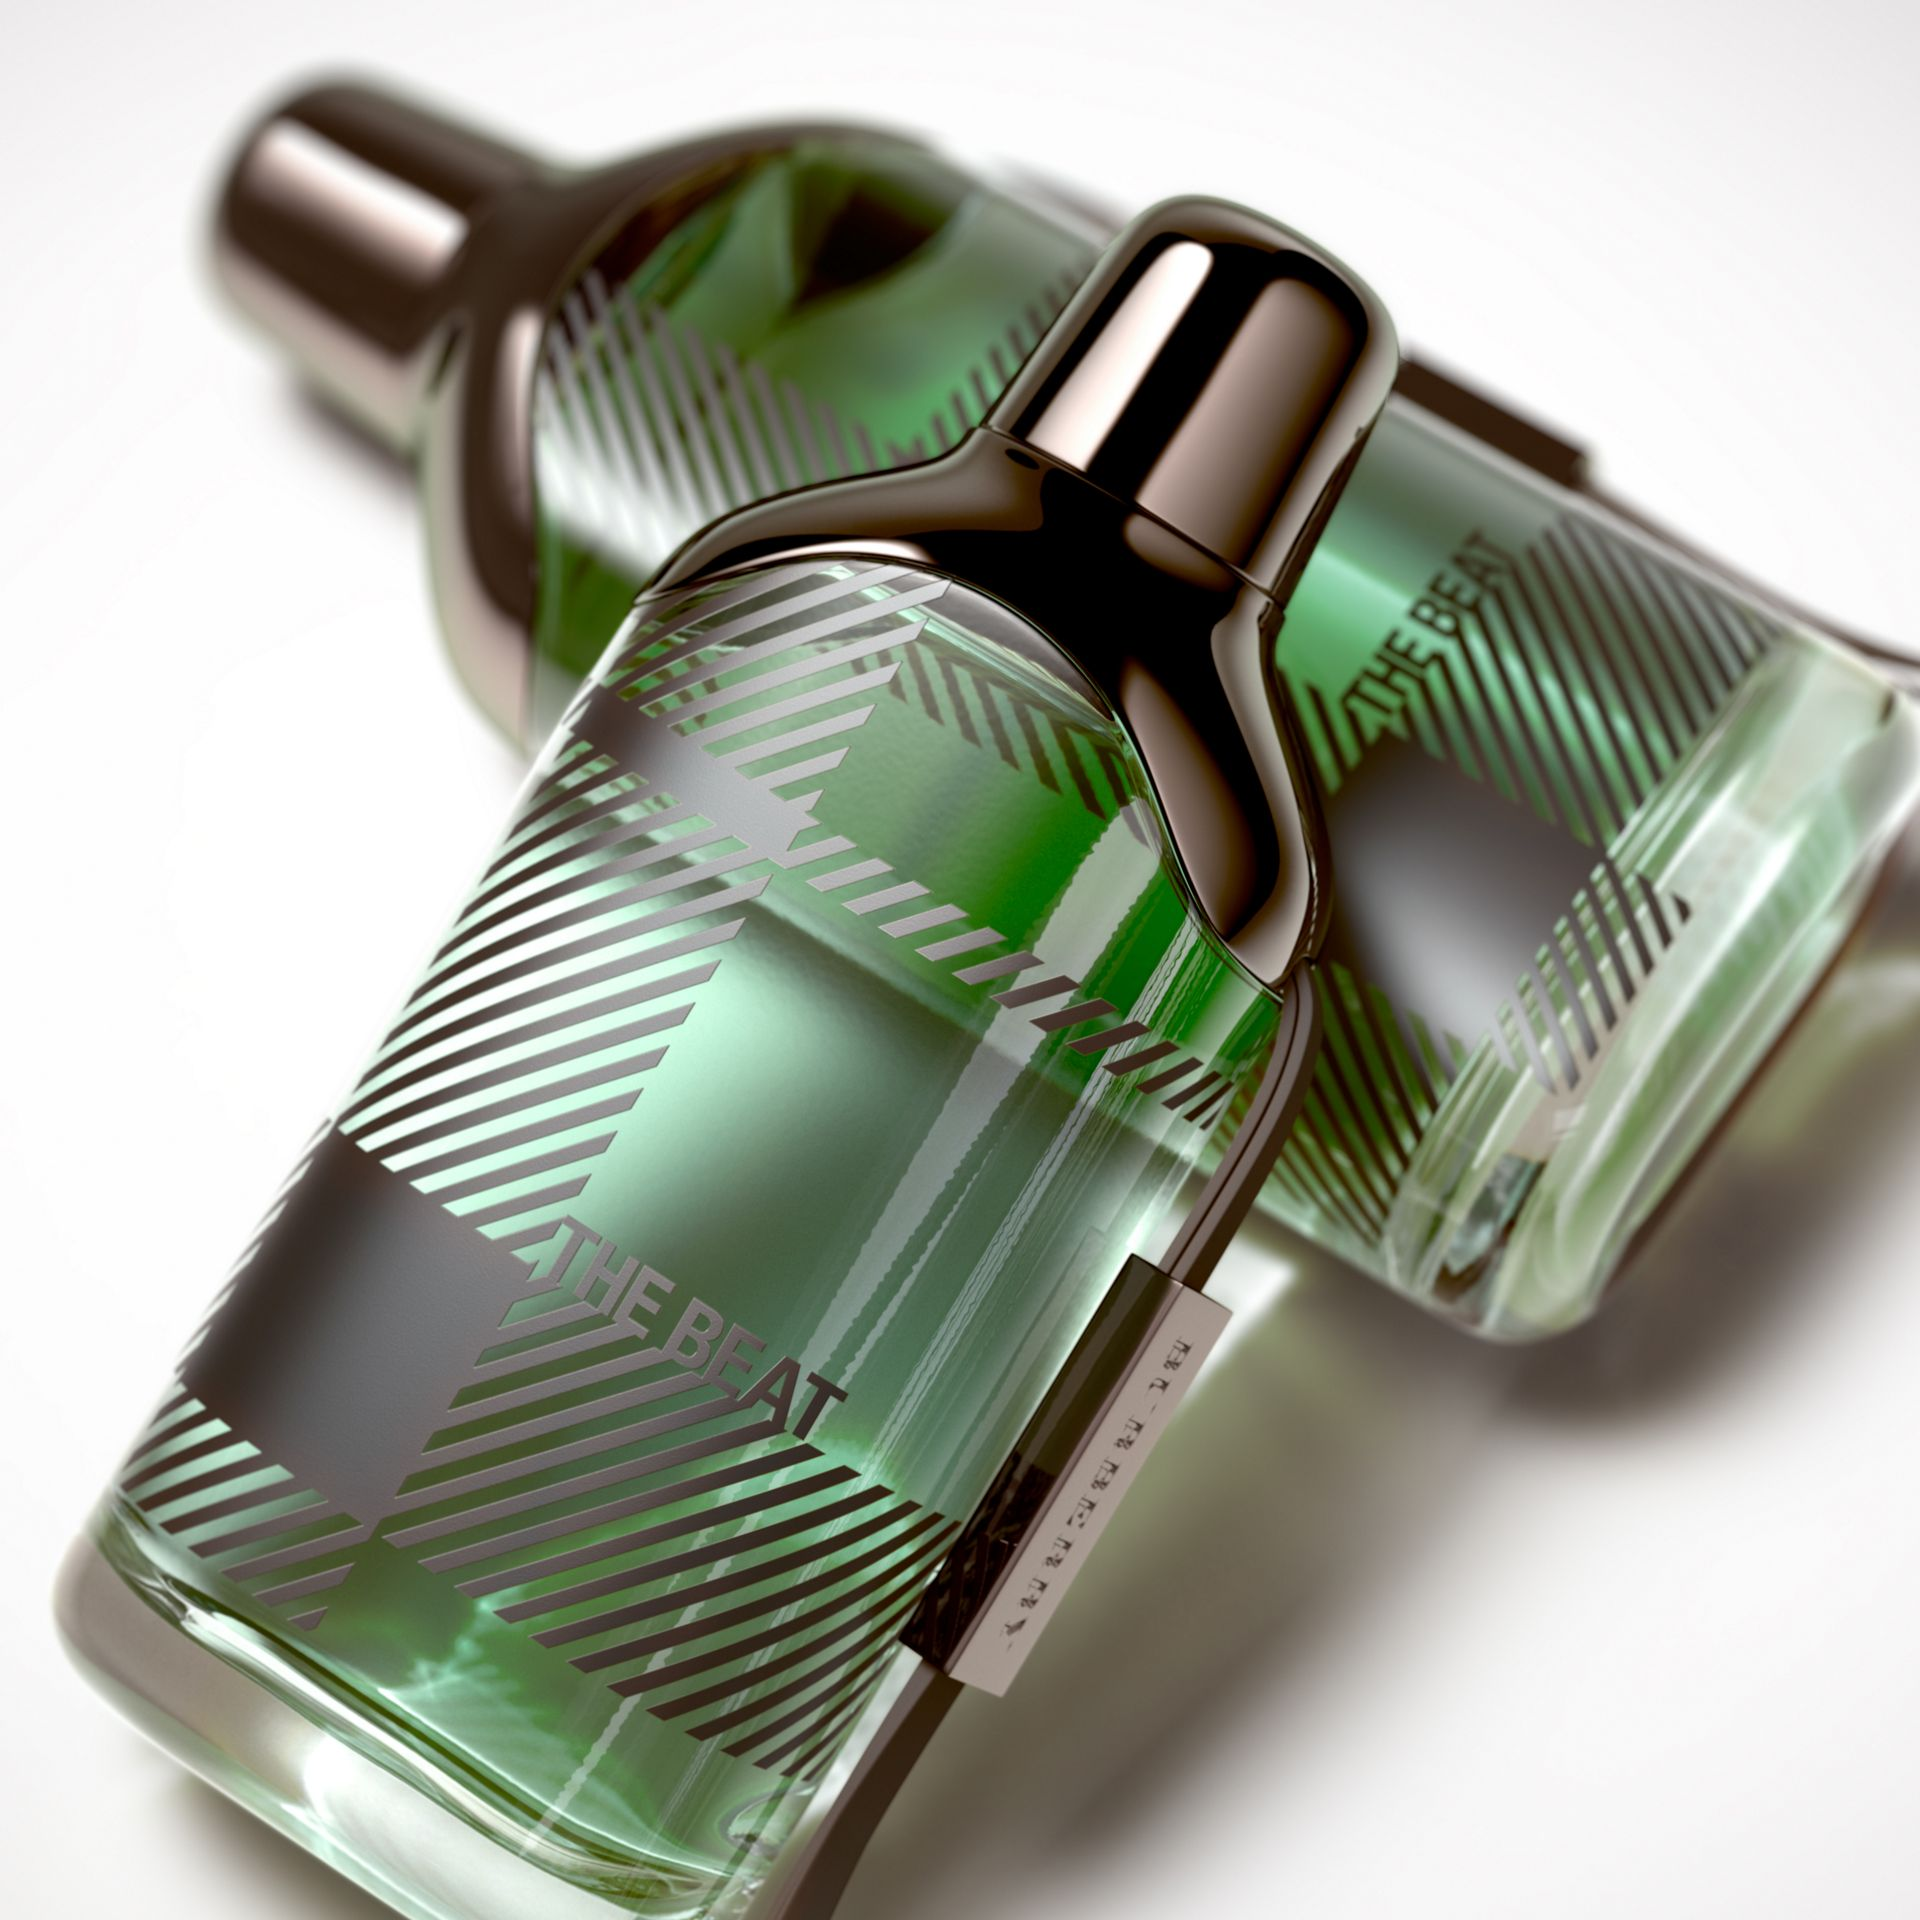 Burberry The Beat Eau de toilette 50 ml - Homme | Burberry - photo de la galerie 1